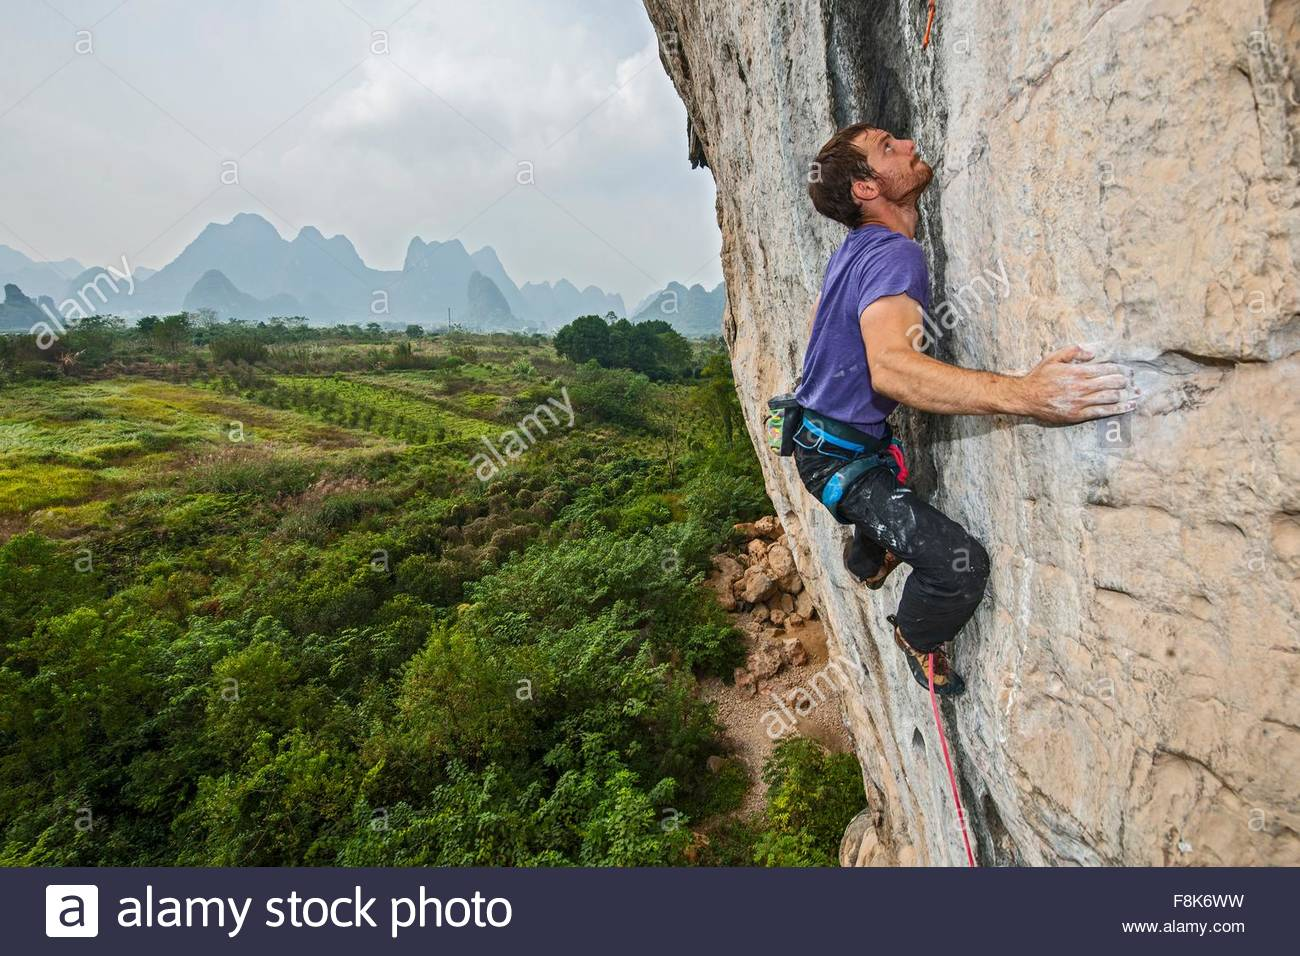 Elevated view of male climber climbing at white Mountain - a limestone cliff in Yangshuo, Guangxi Zhuang, China - Stock Image